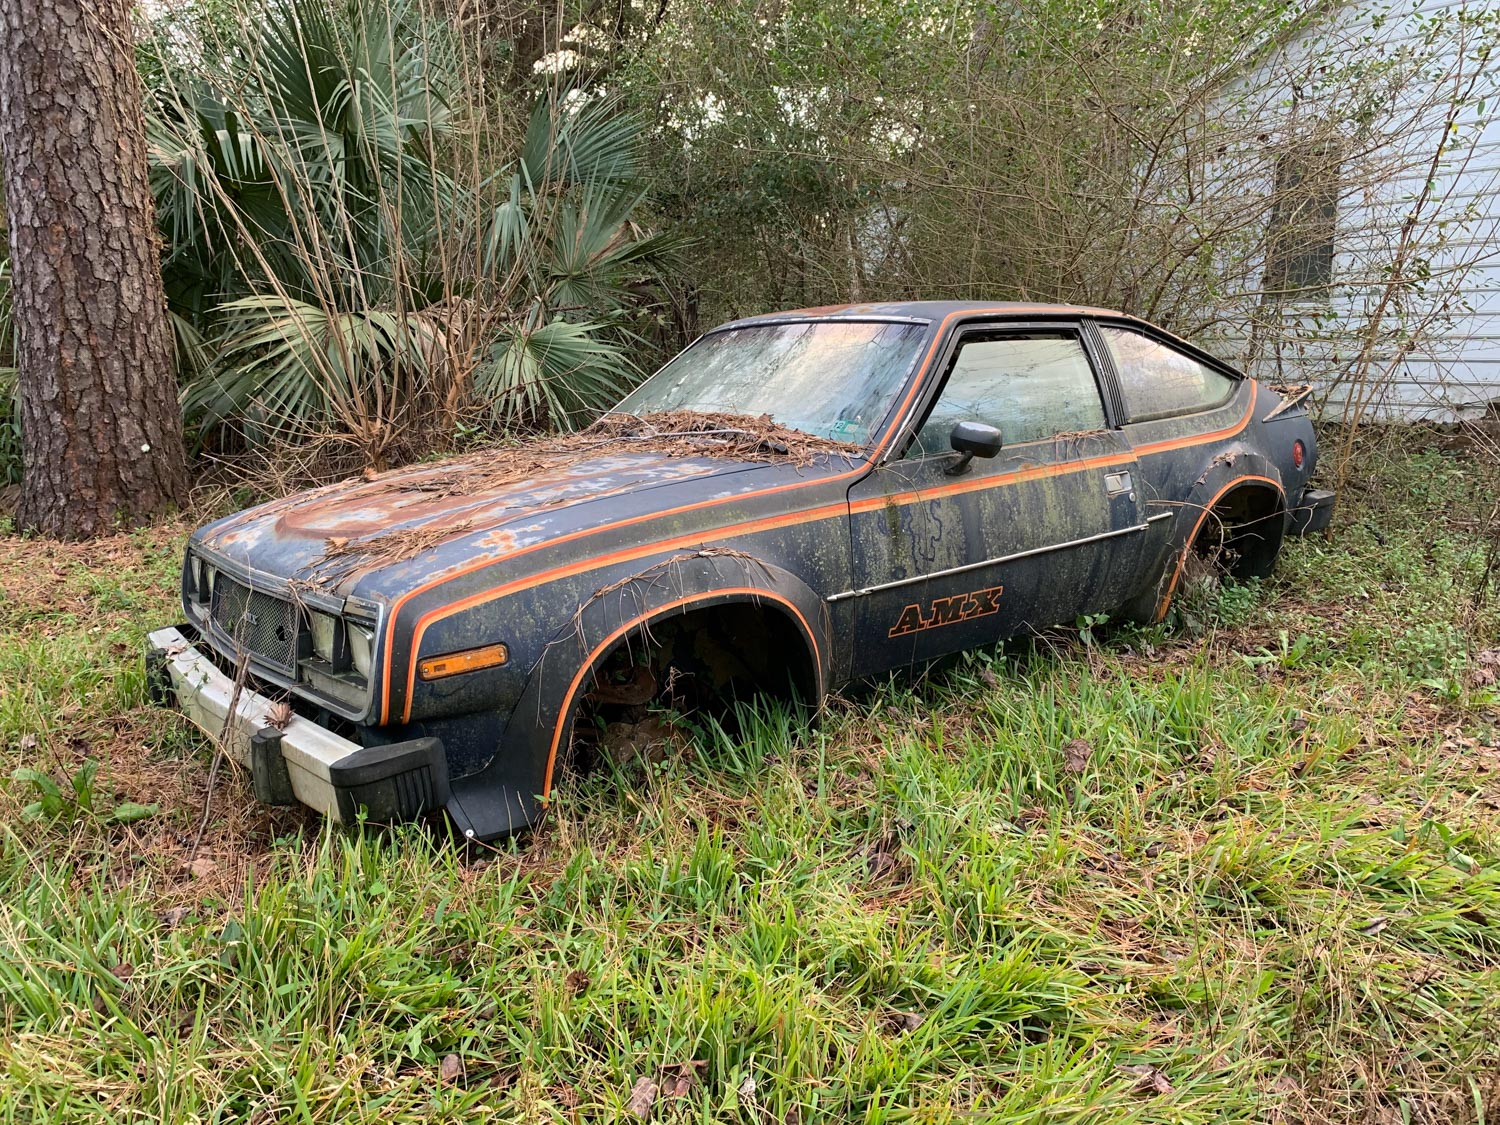 Derelict amc amx in woods